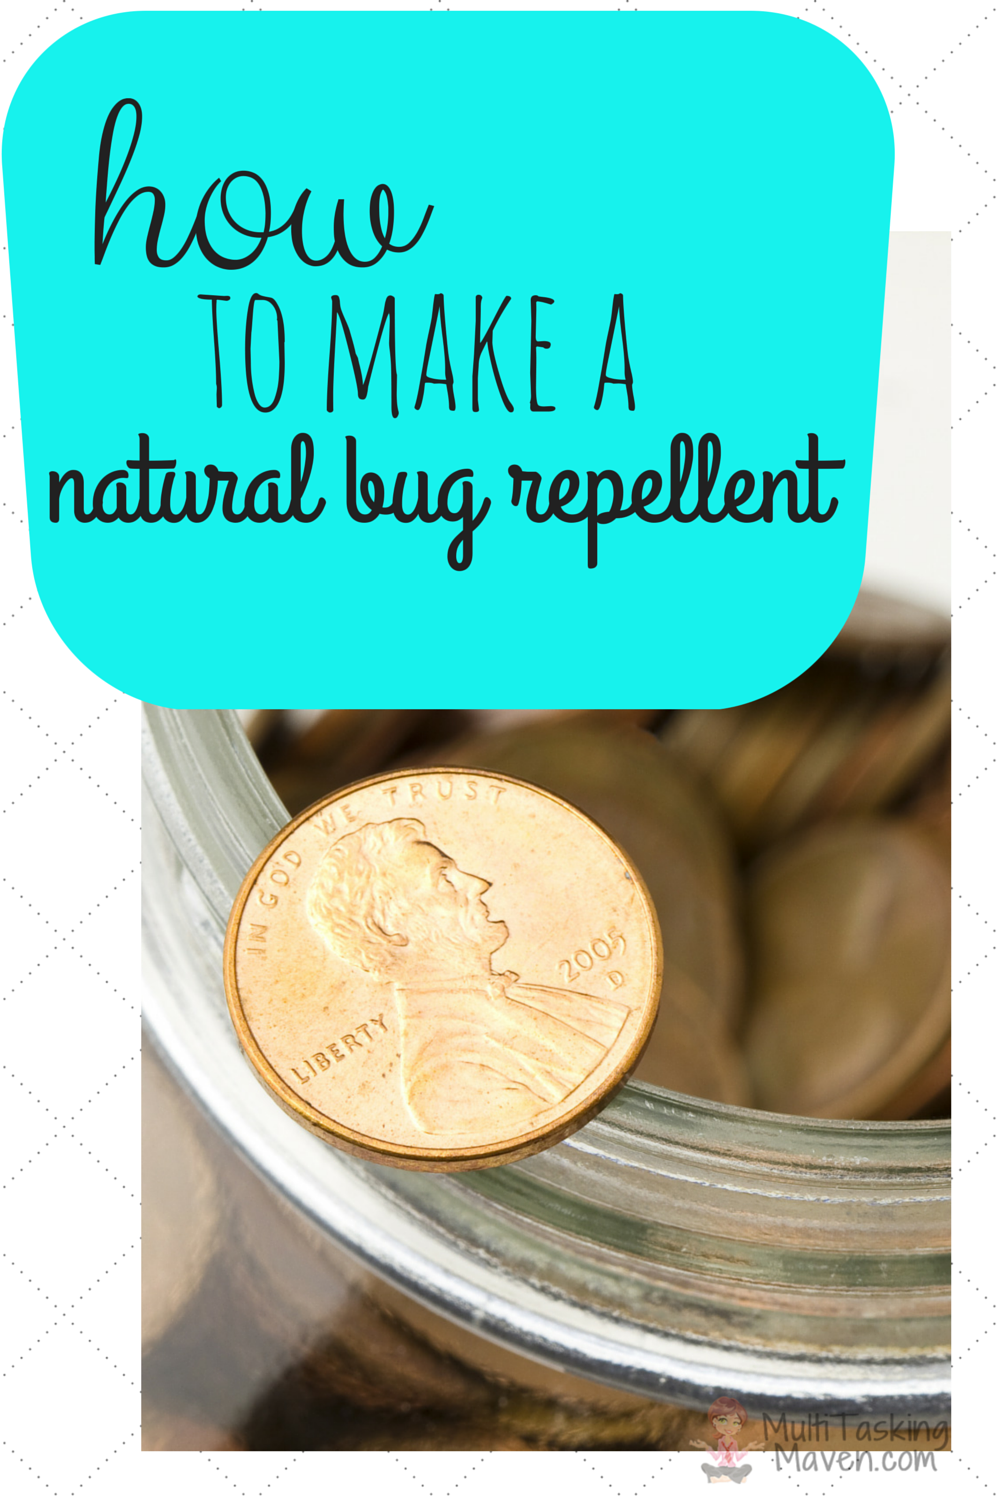 ziploc penny fly control, penny fly repeller, how to make a natural bug repellent